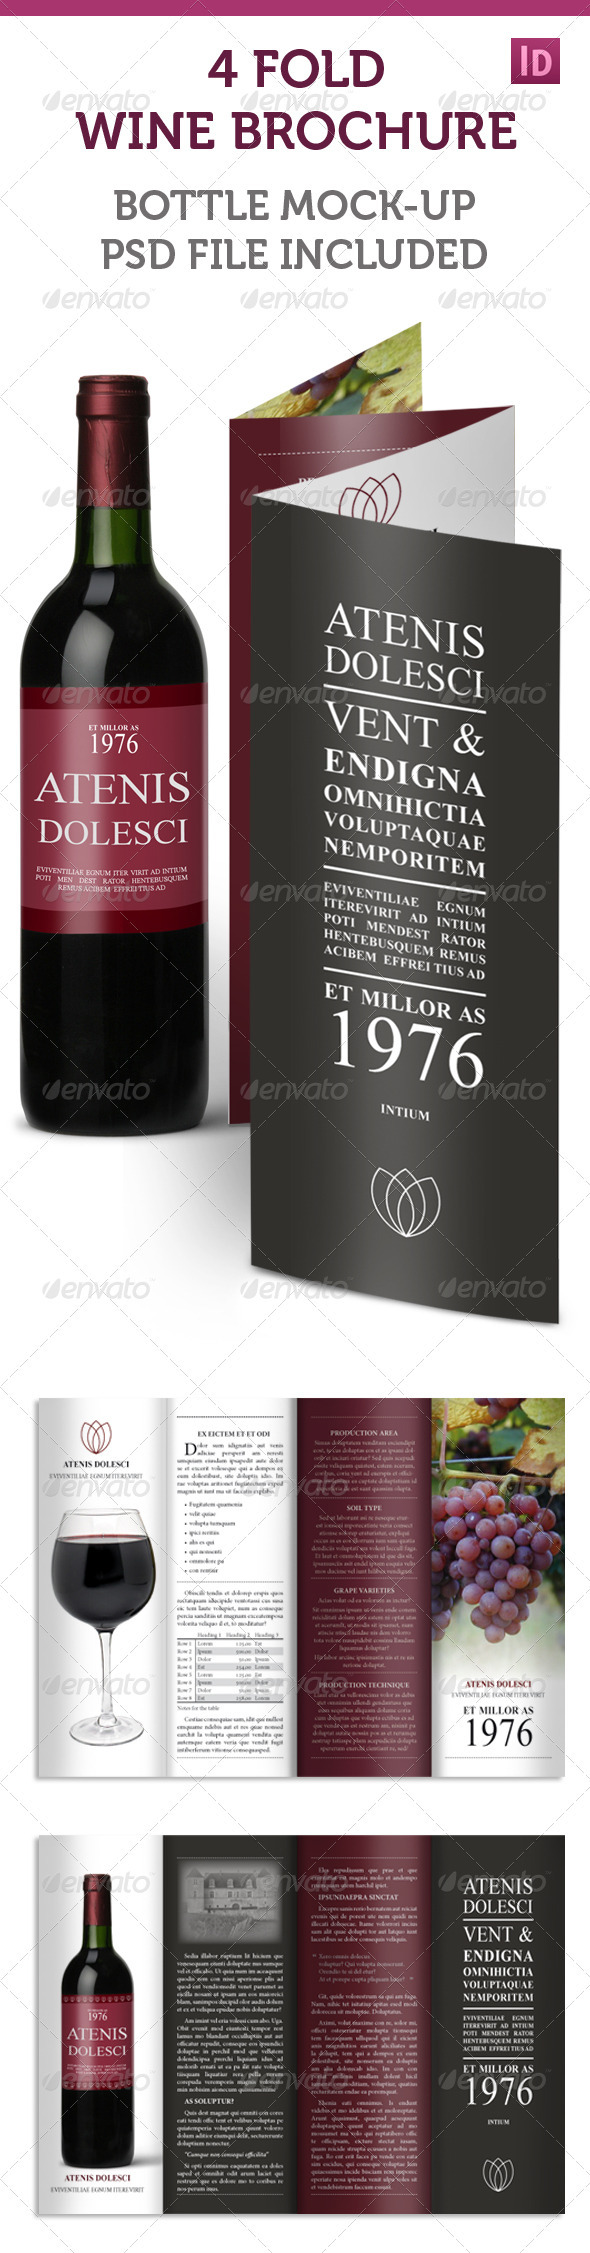 4-fold Accordion Wine Brochure by indesignlove | GraphicRiver